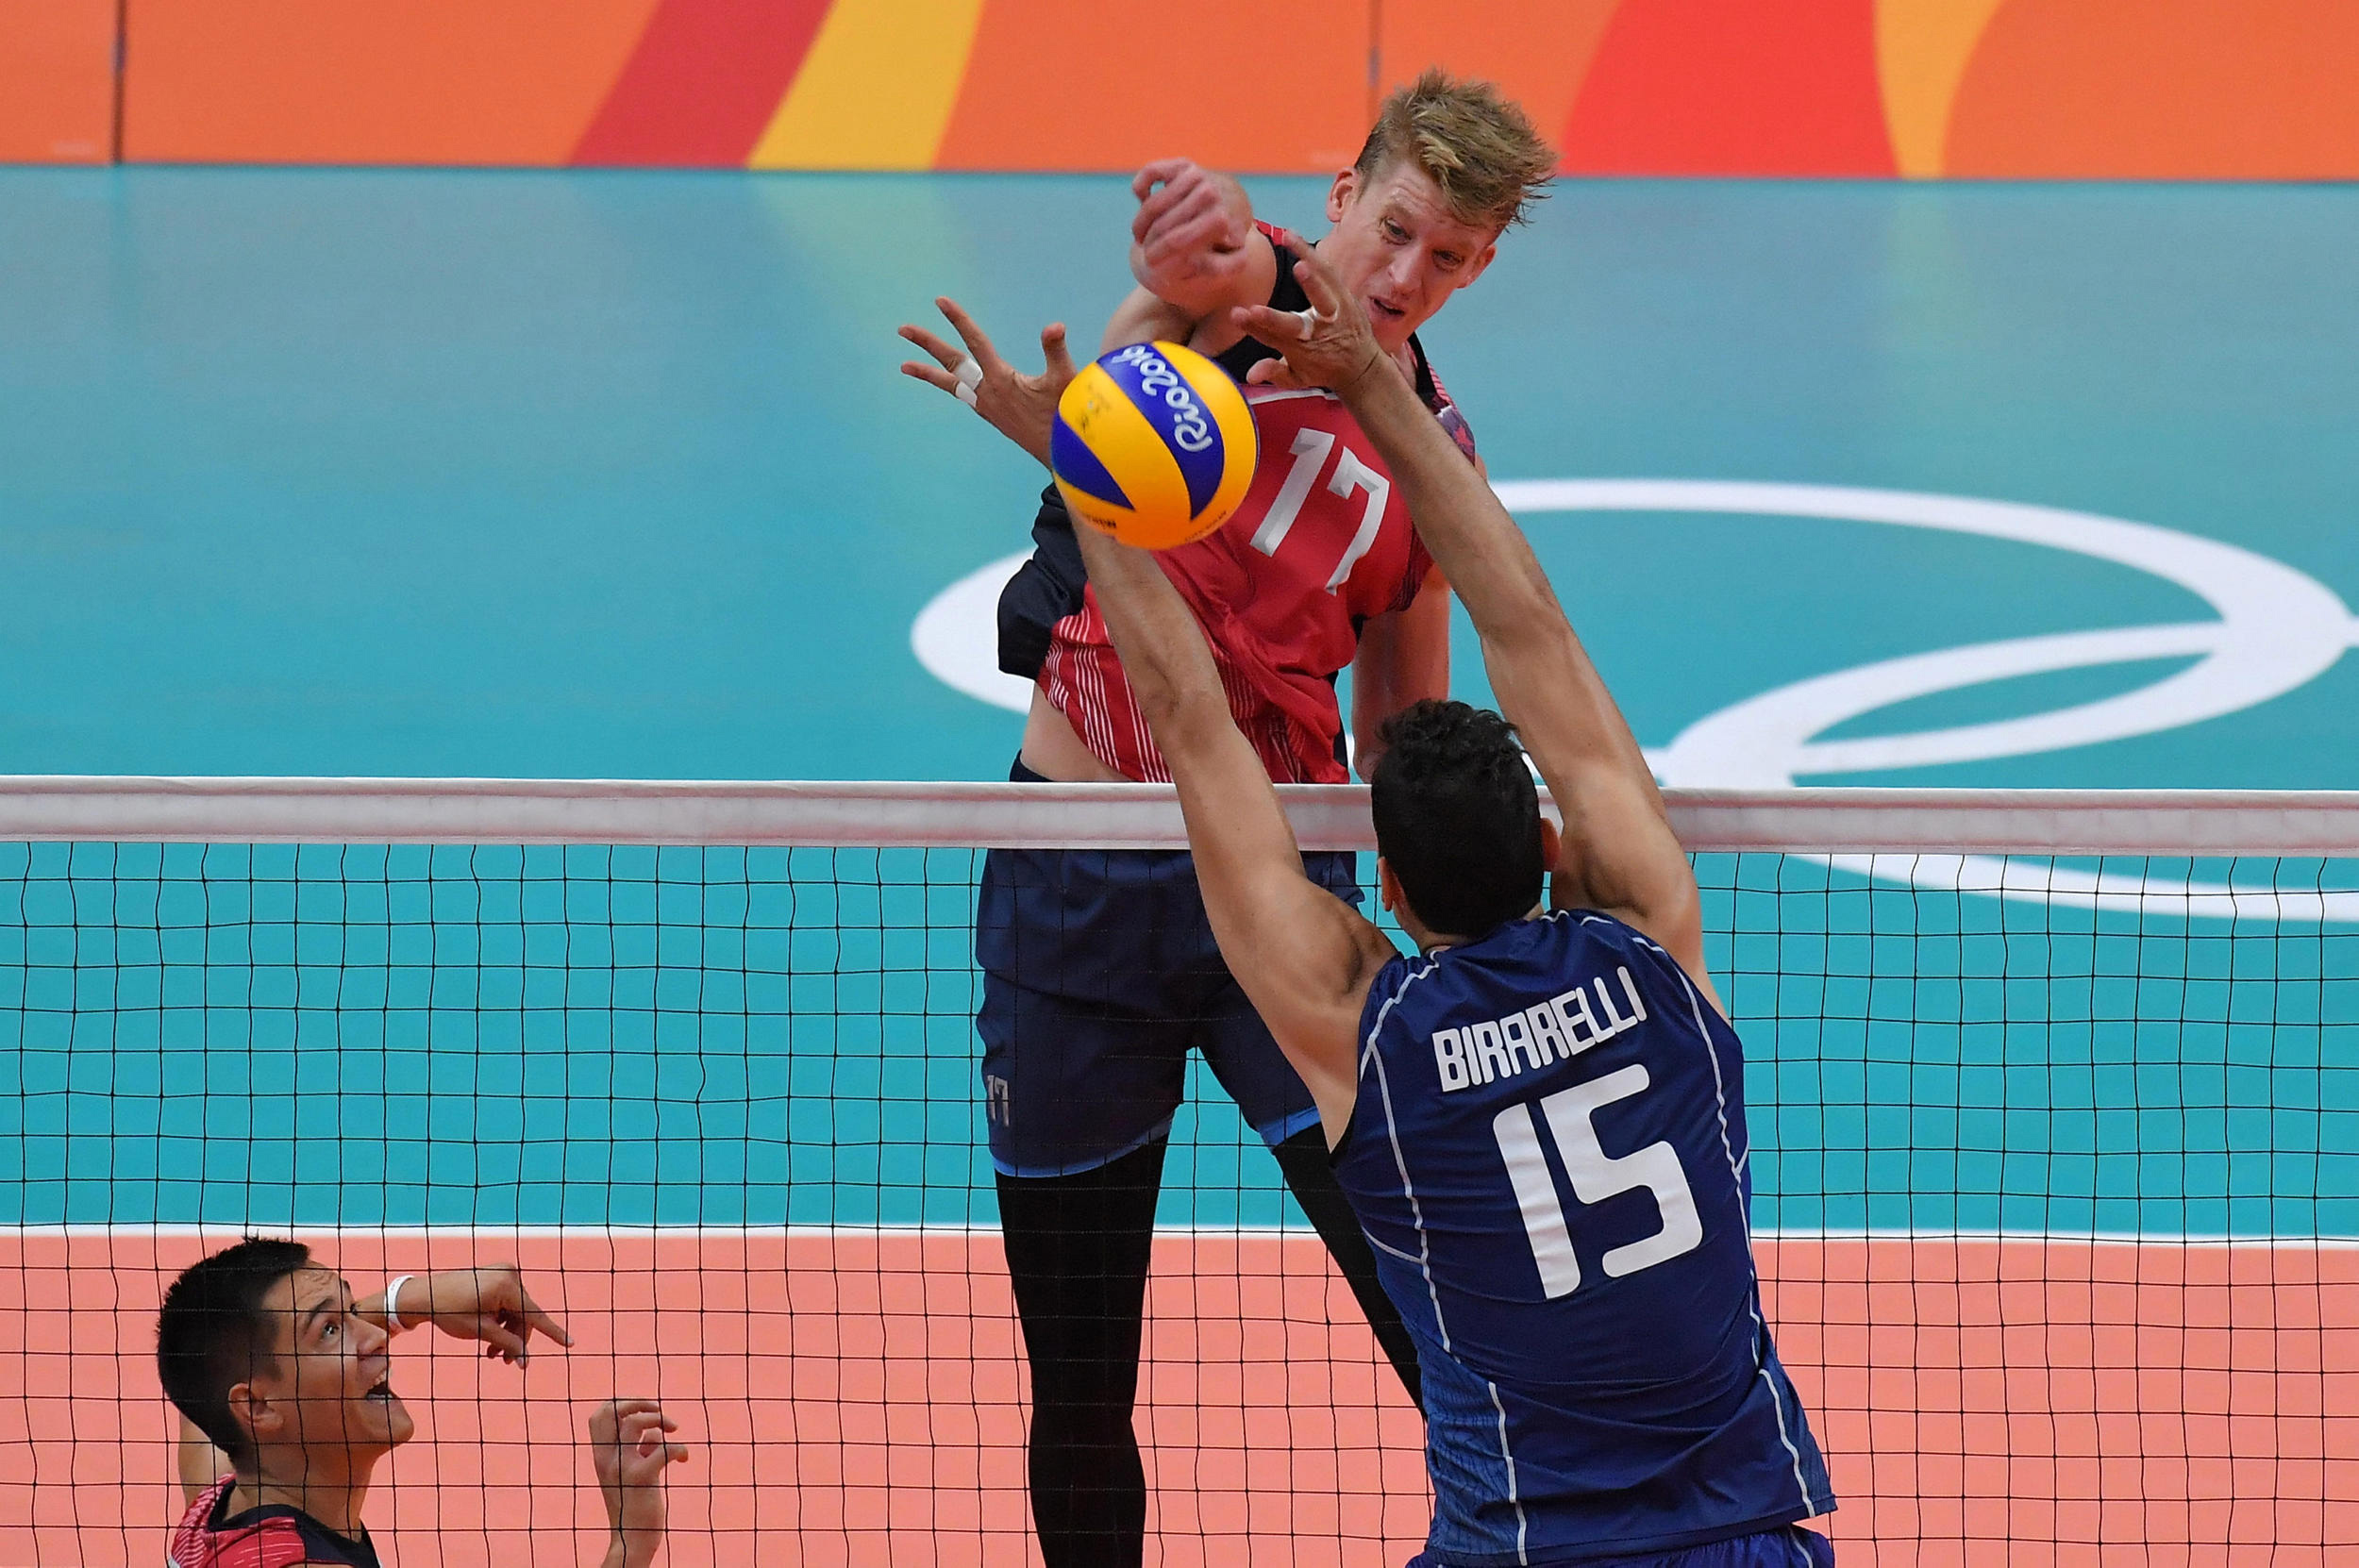 http://www.fivb.org/Vis2009/Images/GetImage.asmx?No=201653316&maxSize=960